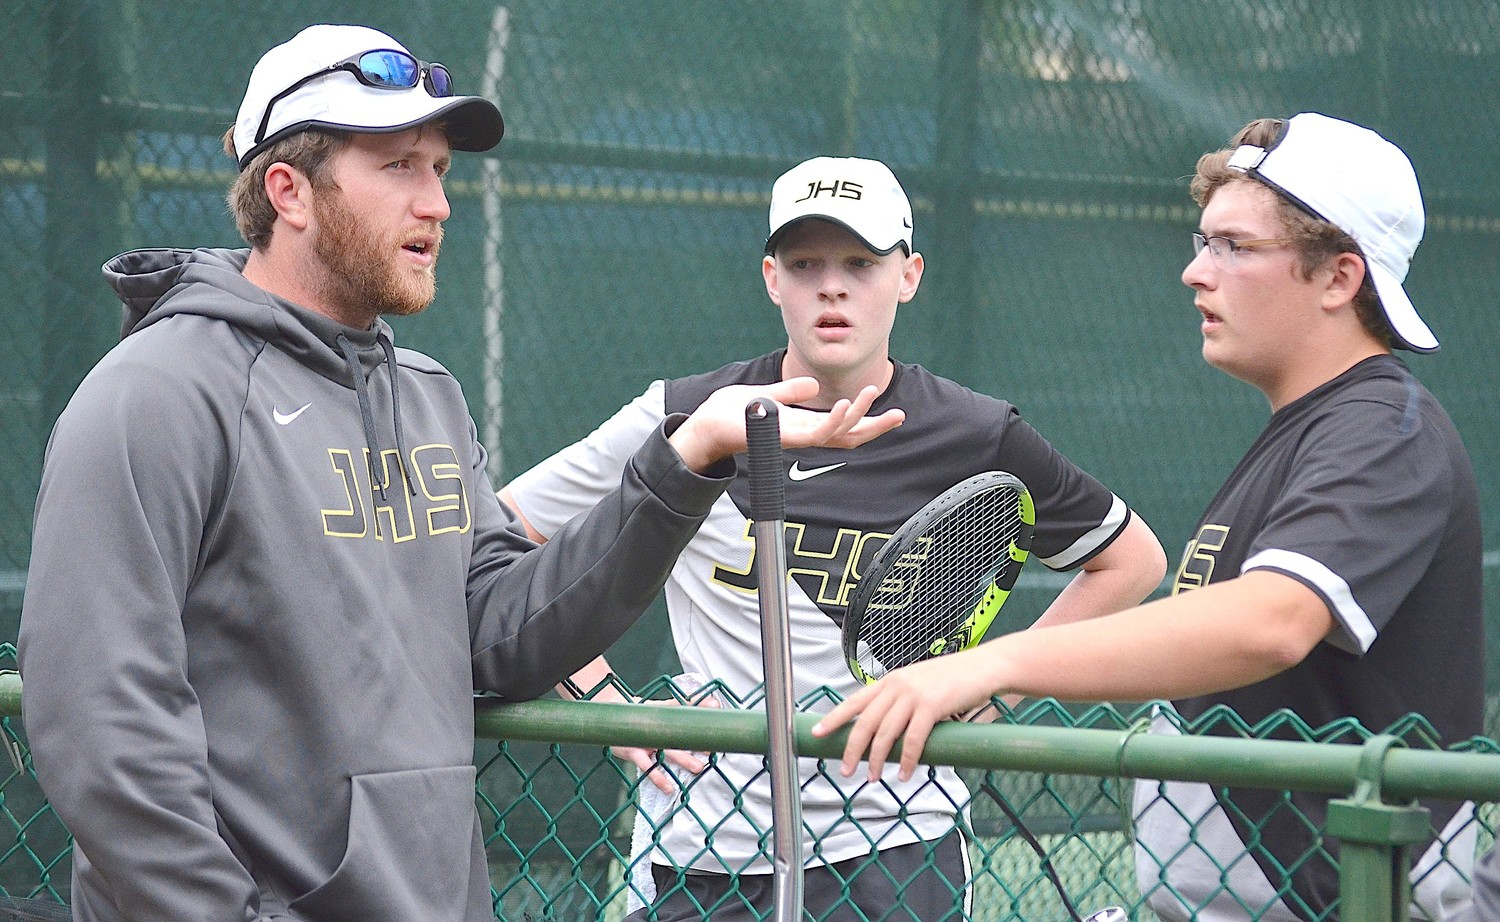 Jasper tennis coach Christian Matthews talks to players during the State Tennis Tournament in Montgomery. The Jasper boys won the Class 6A state title.